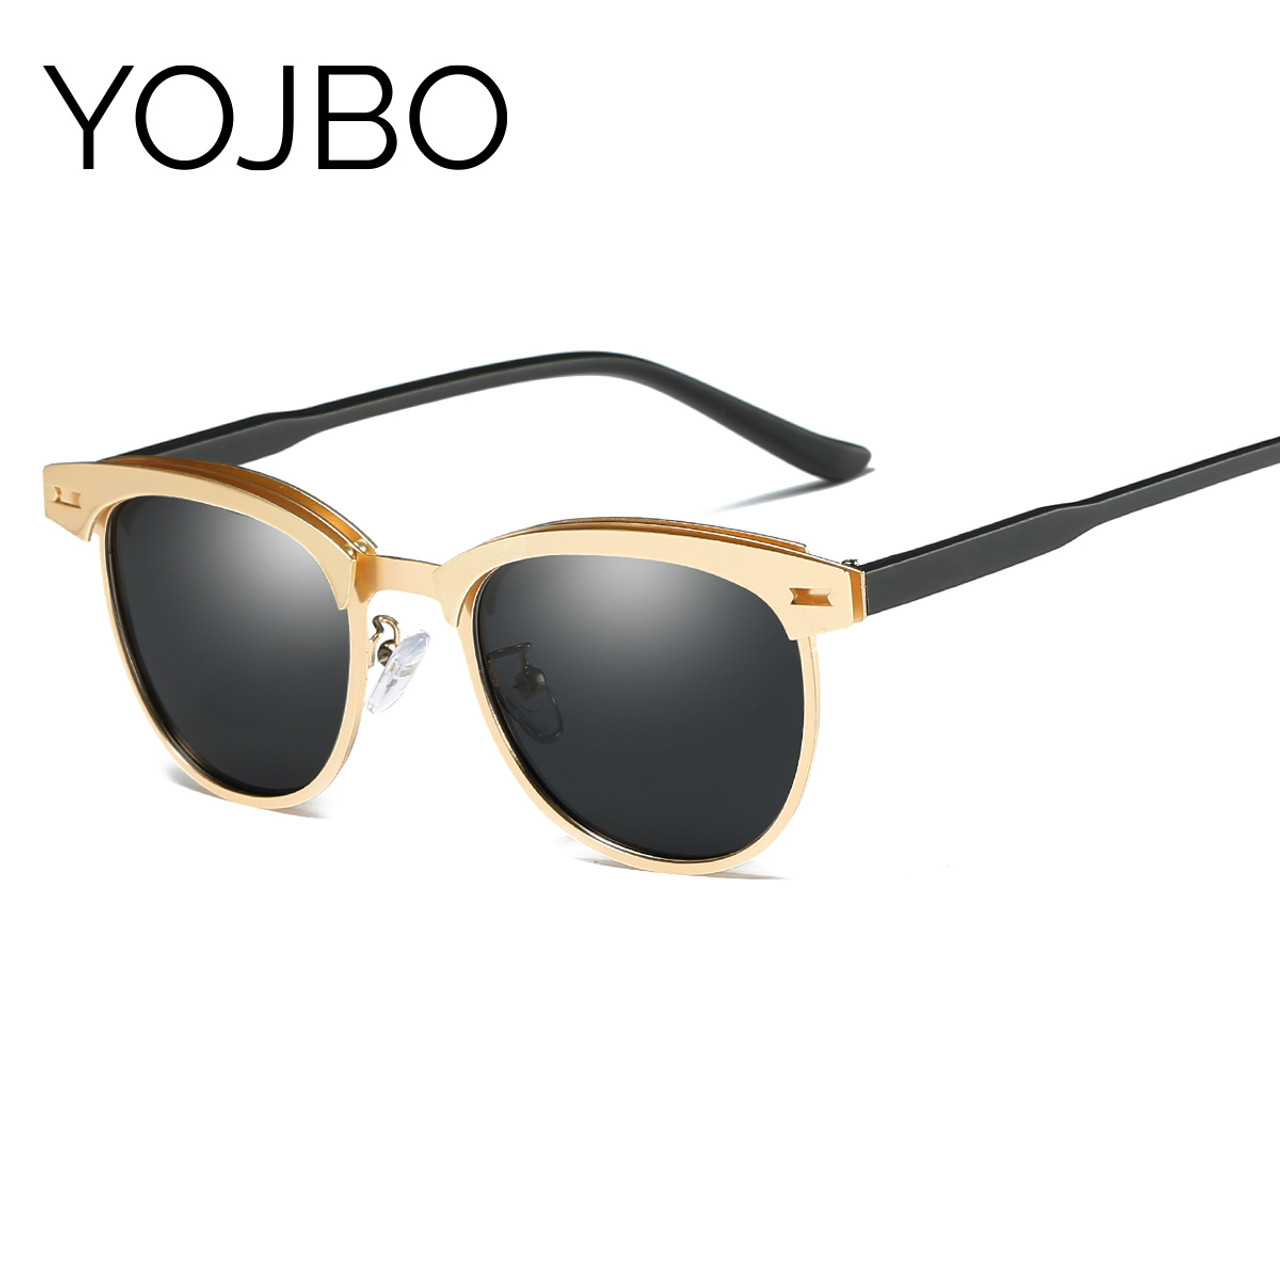 34b61f6c162 ... YOJBO Aviator Sunglasses Men Polarized 2018 Male Ladies Retro Mirror  Women Vintage Shades Luxury Brand Designe ...